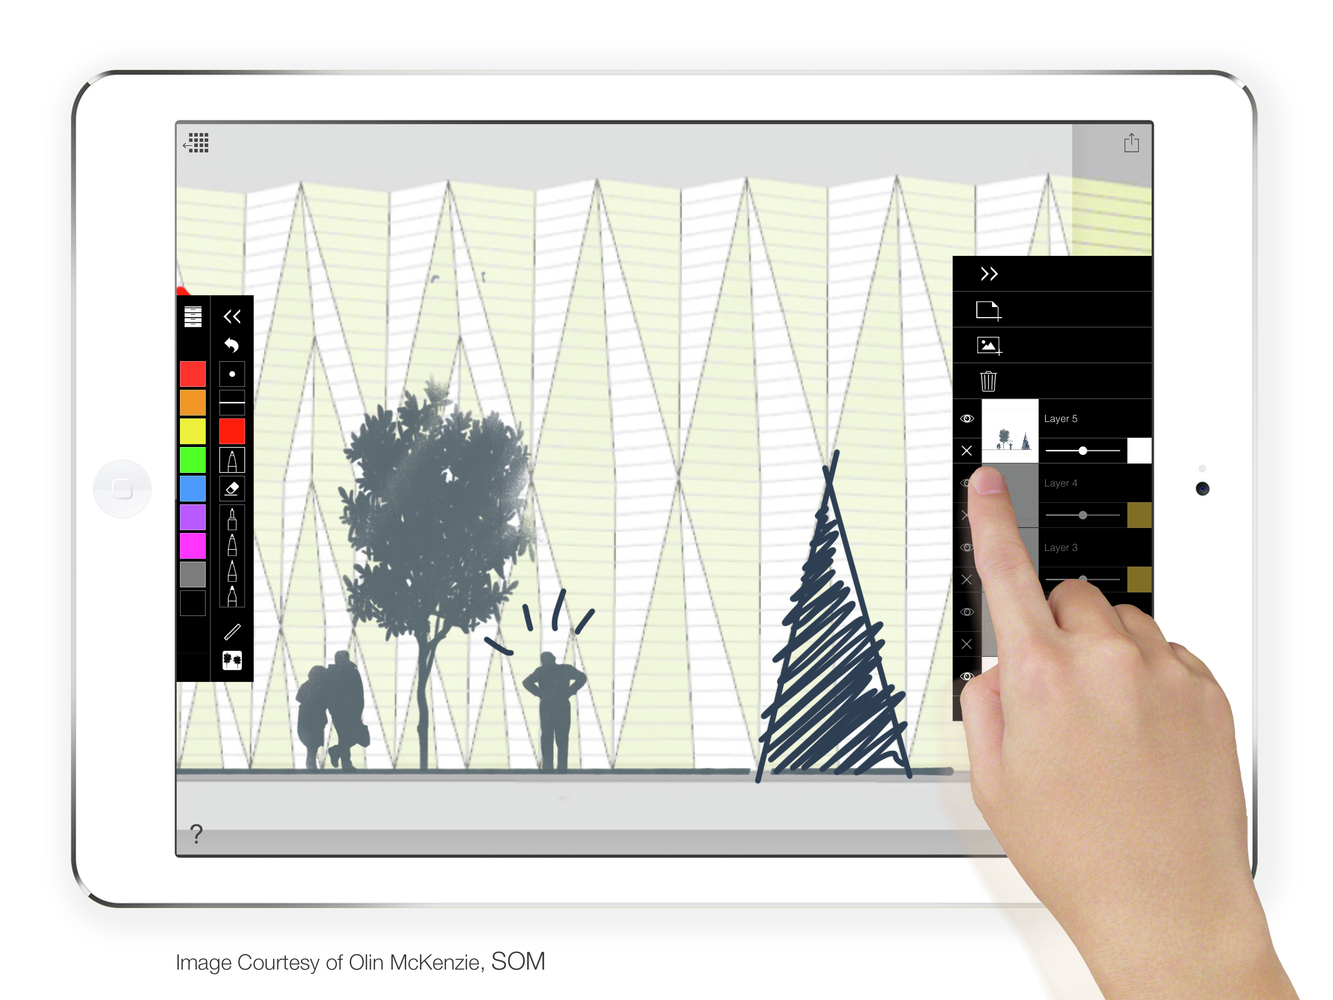 Gallery of ad app guide morpholio releases tracepro for - Application architecture ipad ...